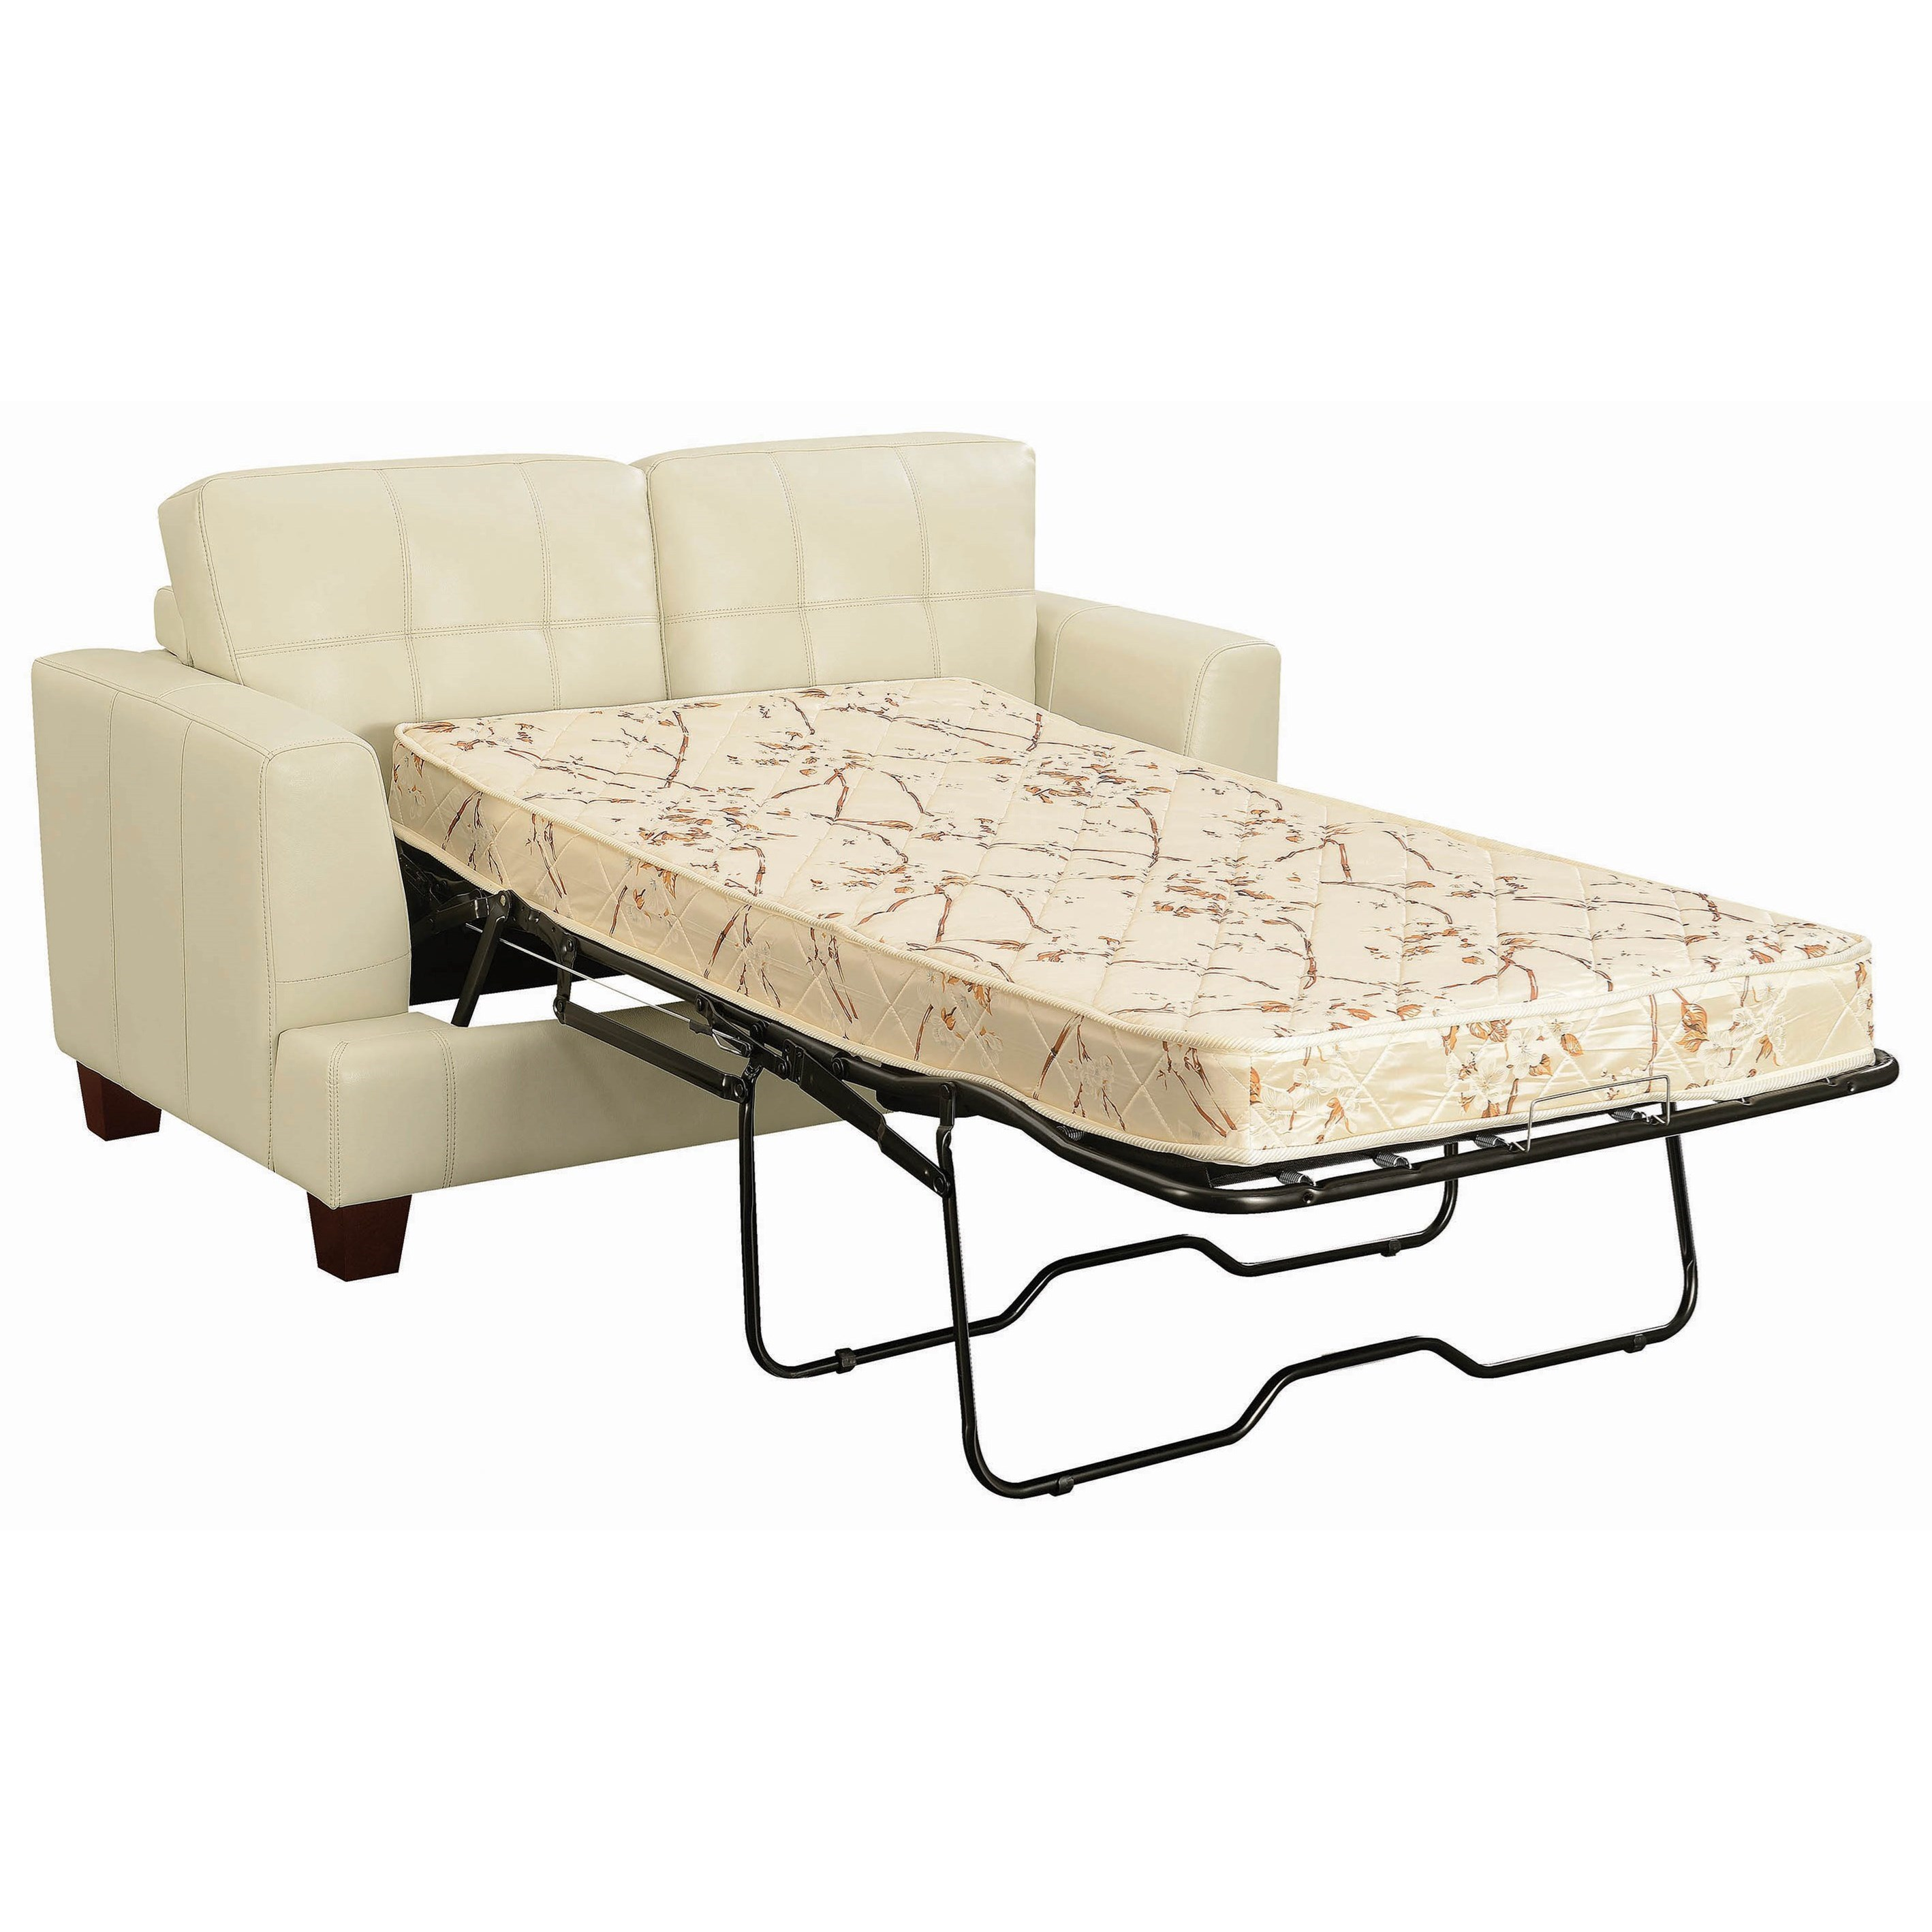 Samuel Loveseat Sleeper by Coaster at Prime Brothers Furniture